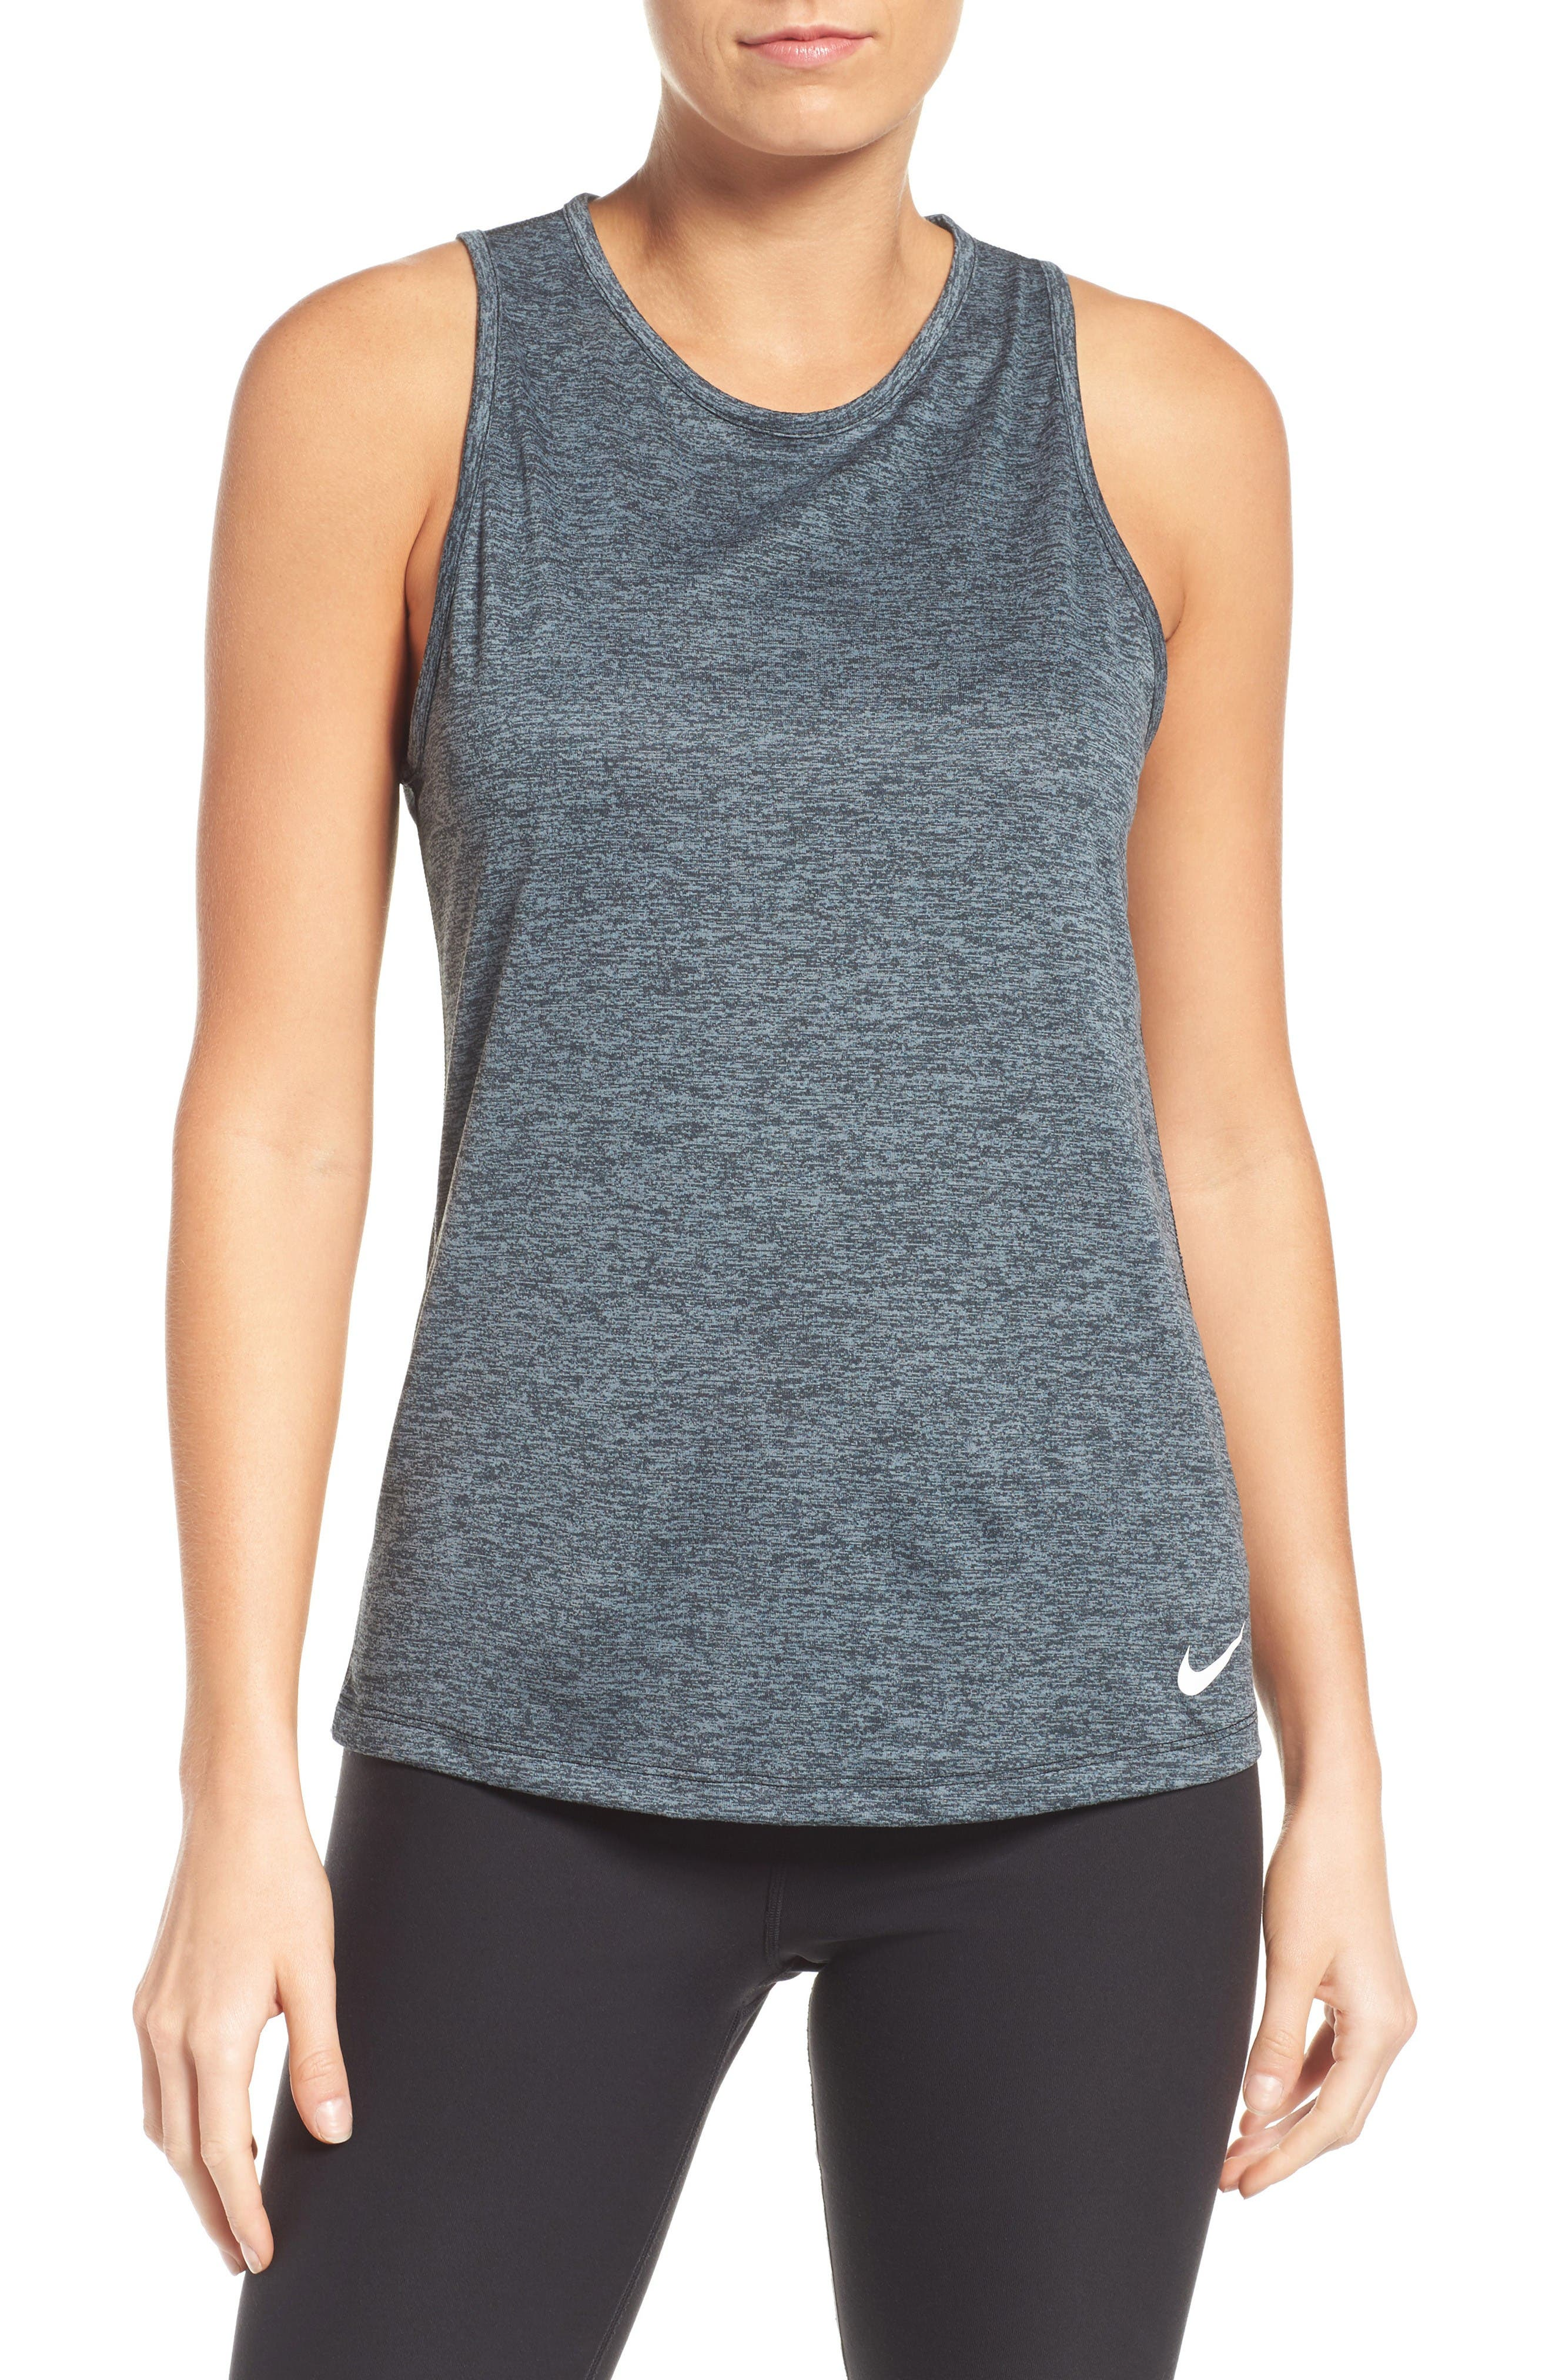 Dry Training Tank,                         Main,                         color, Black/ Heather/ Cool Grey